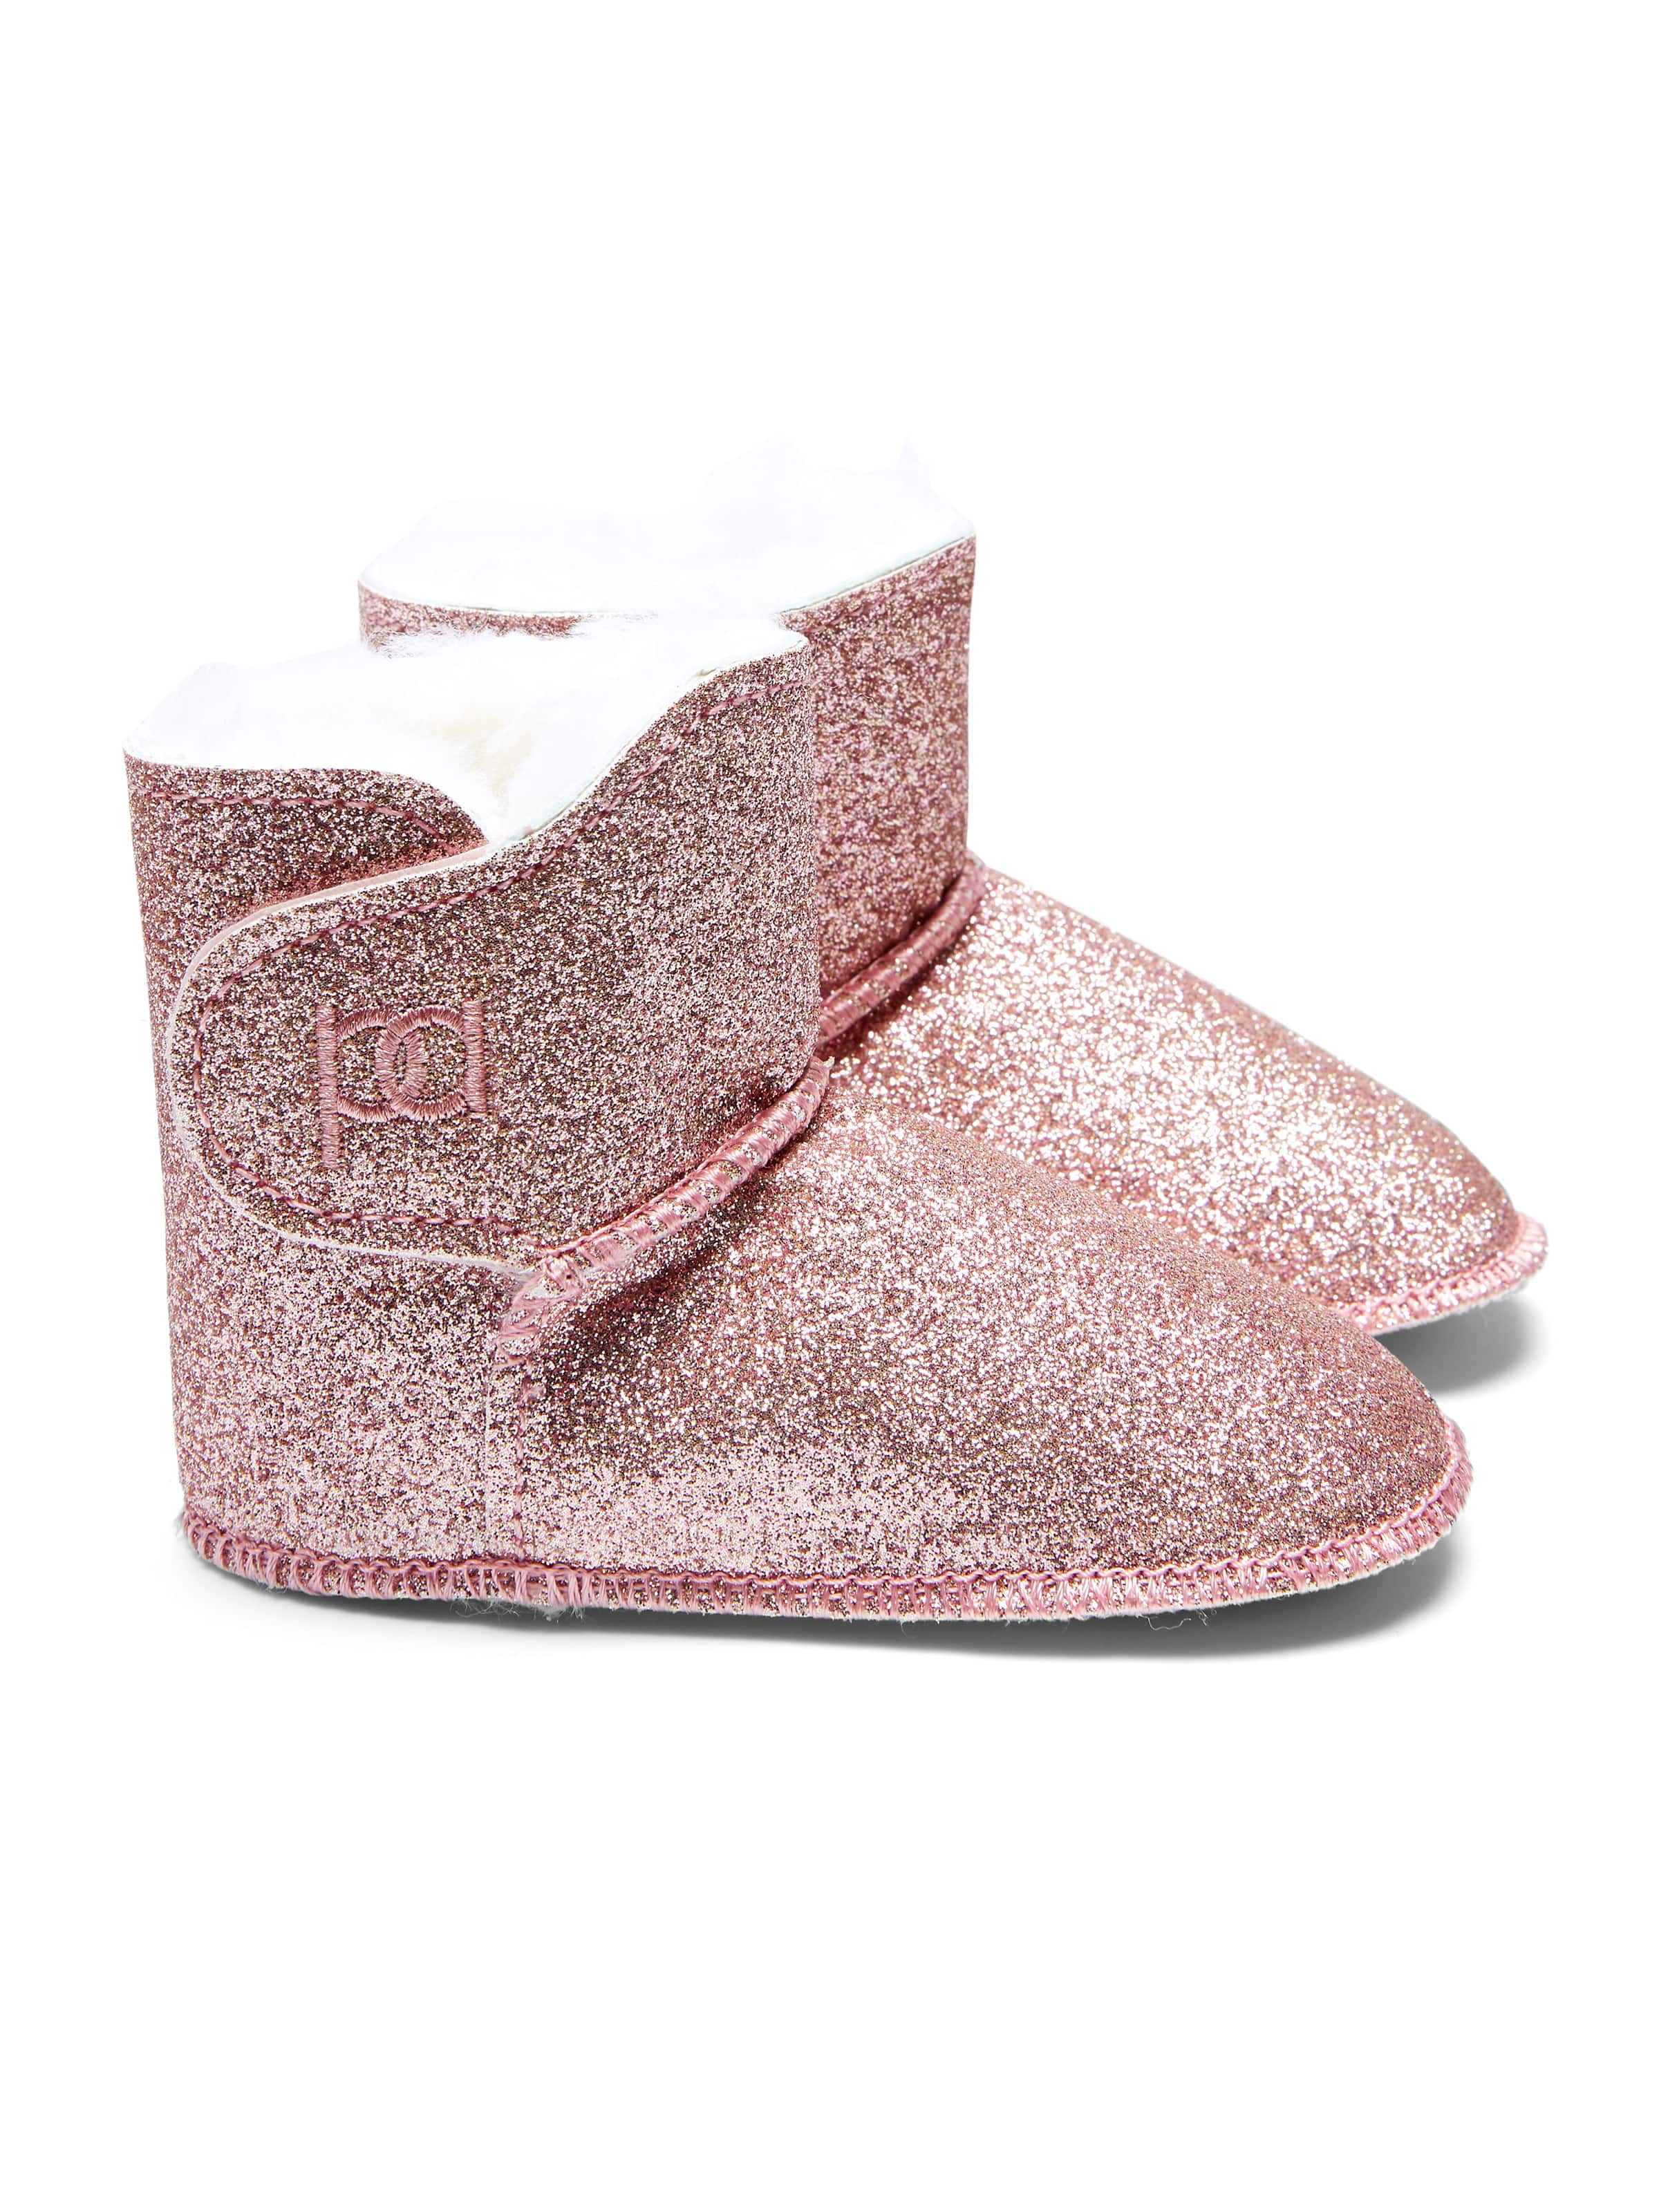 Baby P.A. Limited Edition Glitter Homeboot